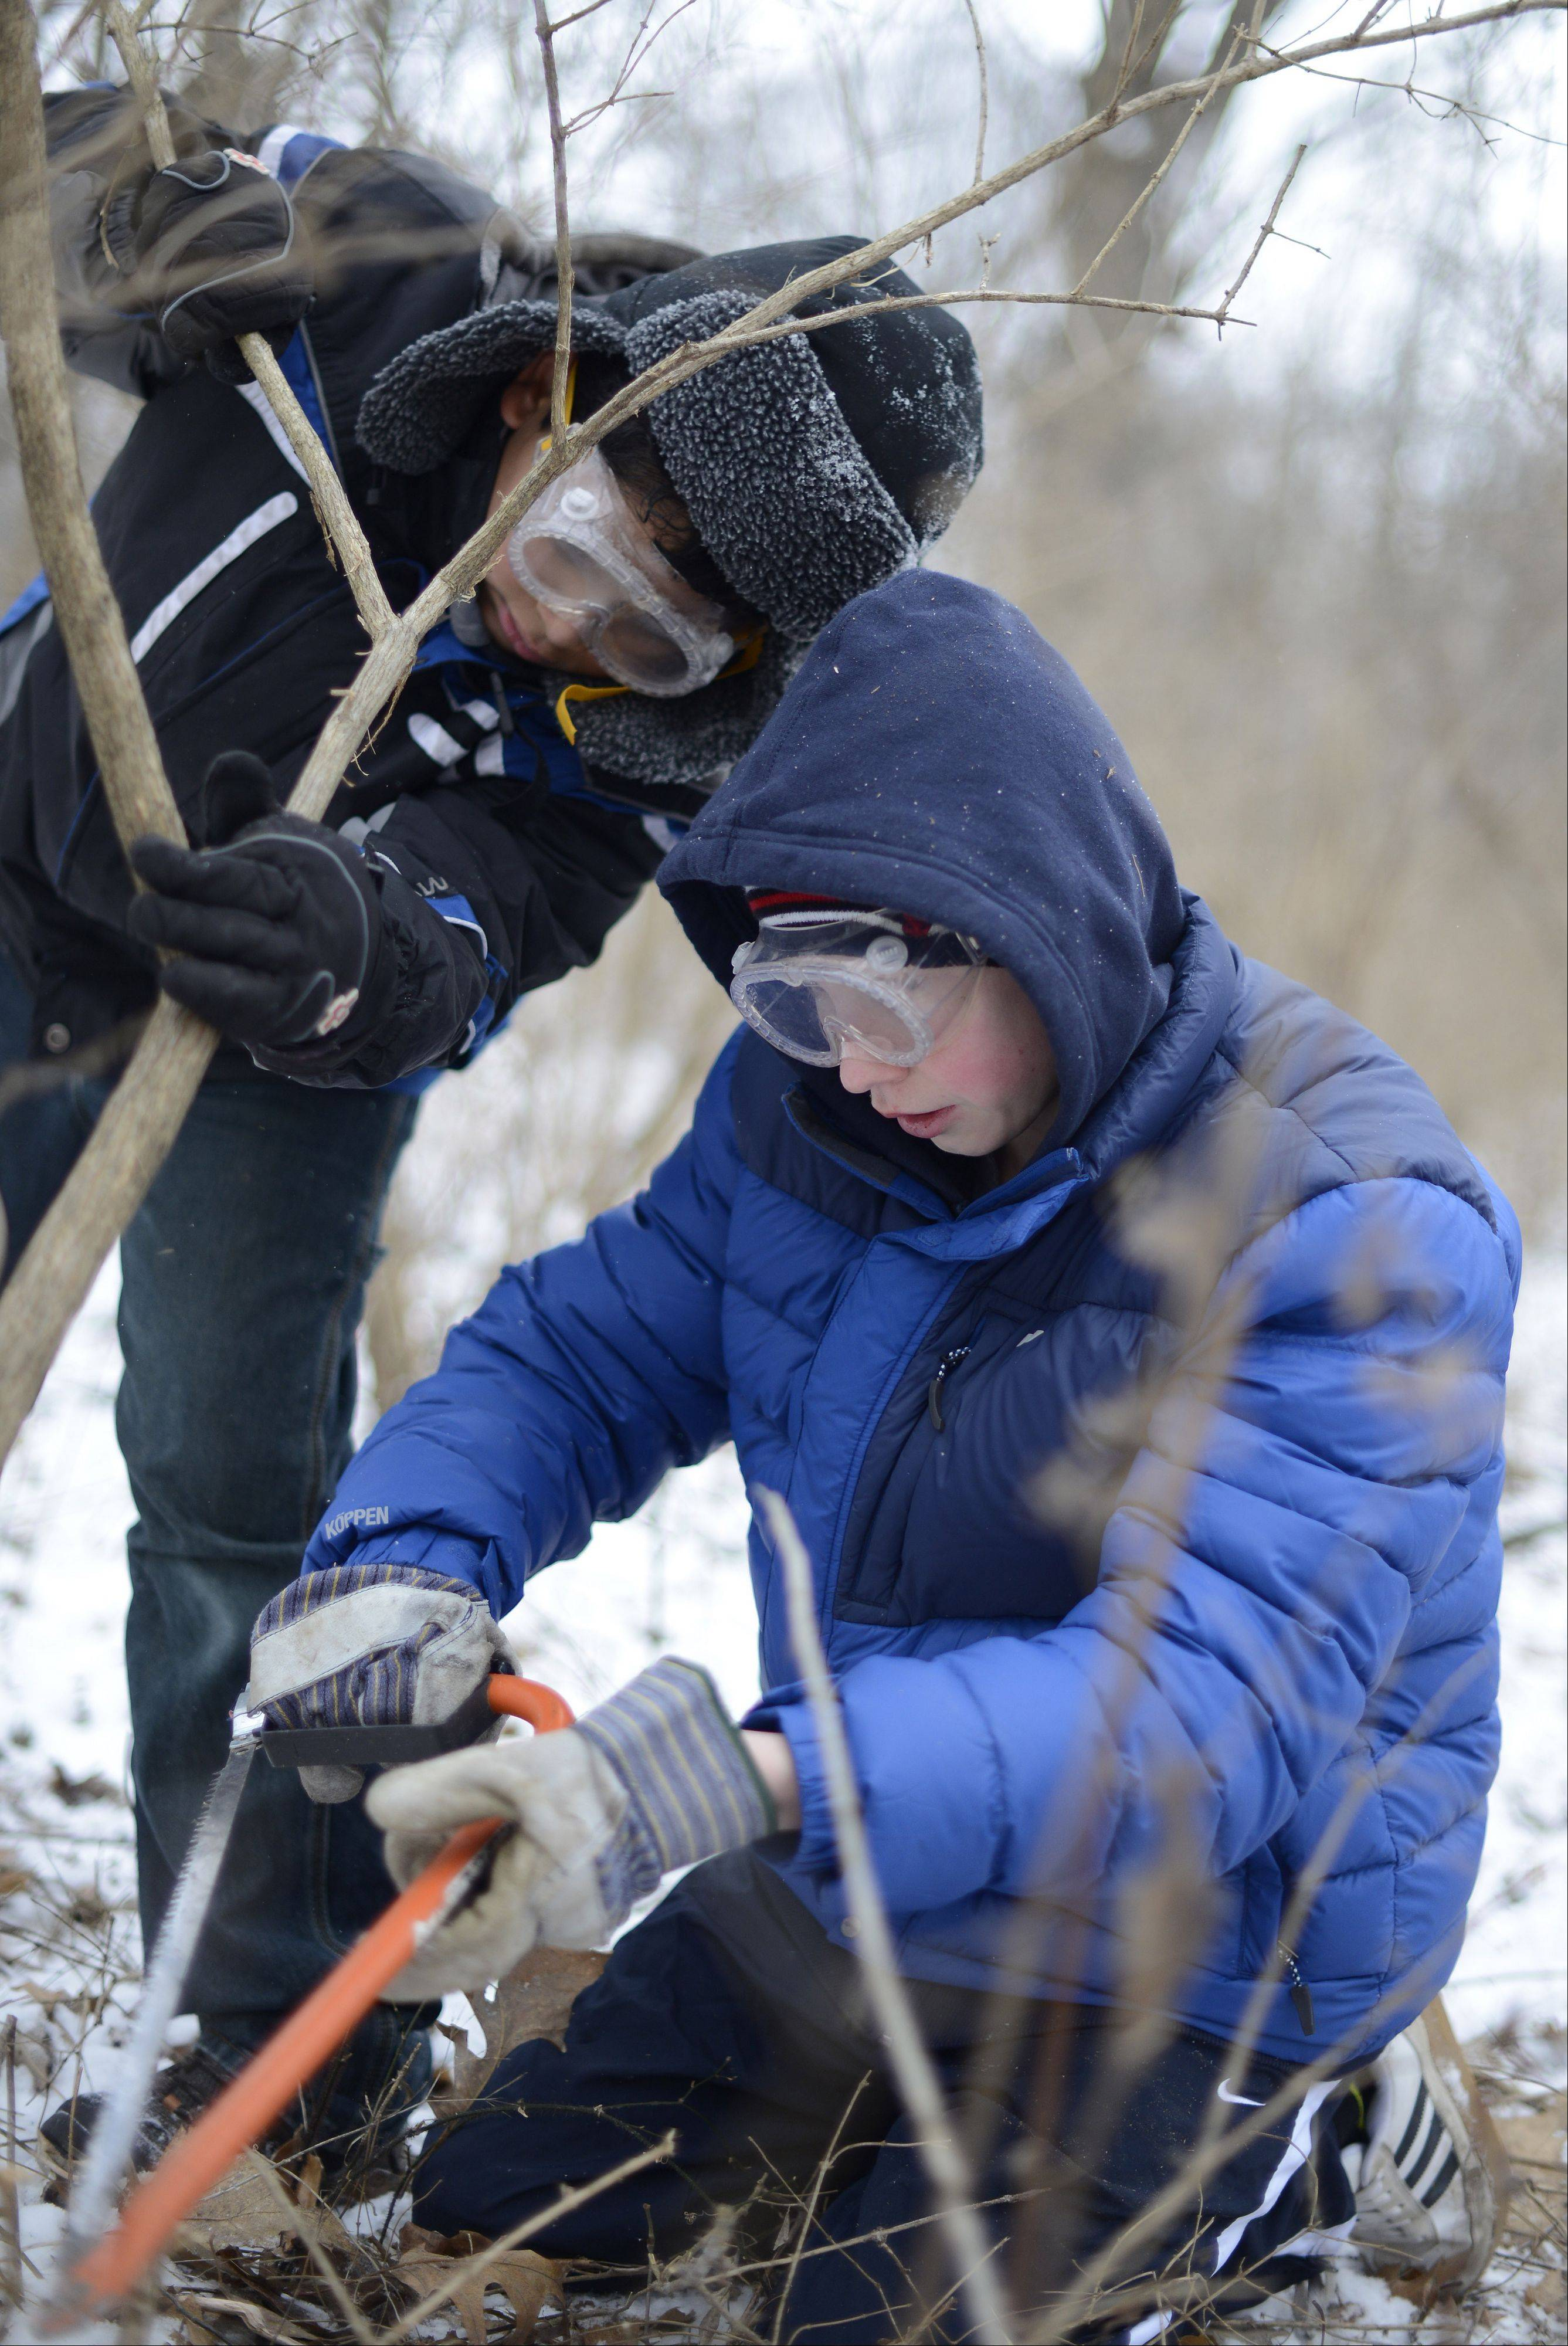 Sammy Gomez, 12, left, helps Dylan Lockwood, 13, both of Elgin, cut down non-native honeysuckle plants at the new Creek Bend Nature Center at LeRoy Oakes in St. Charles.